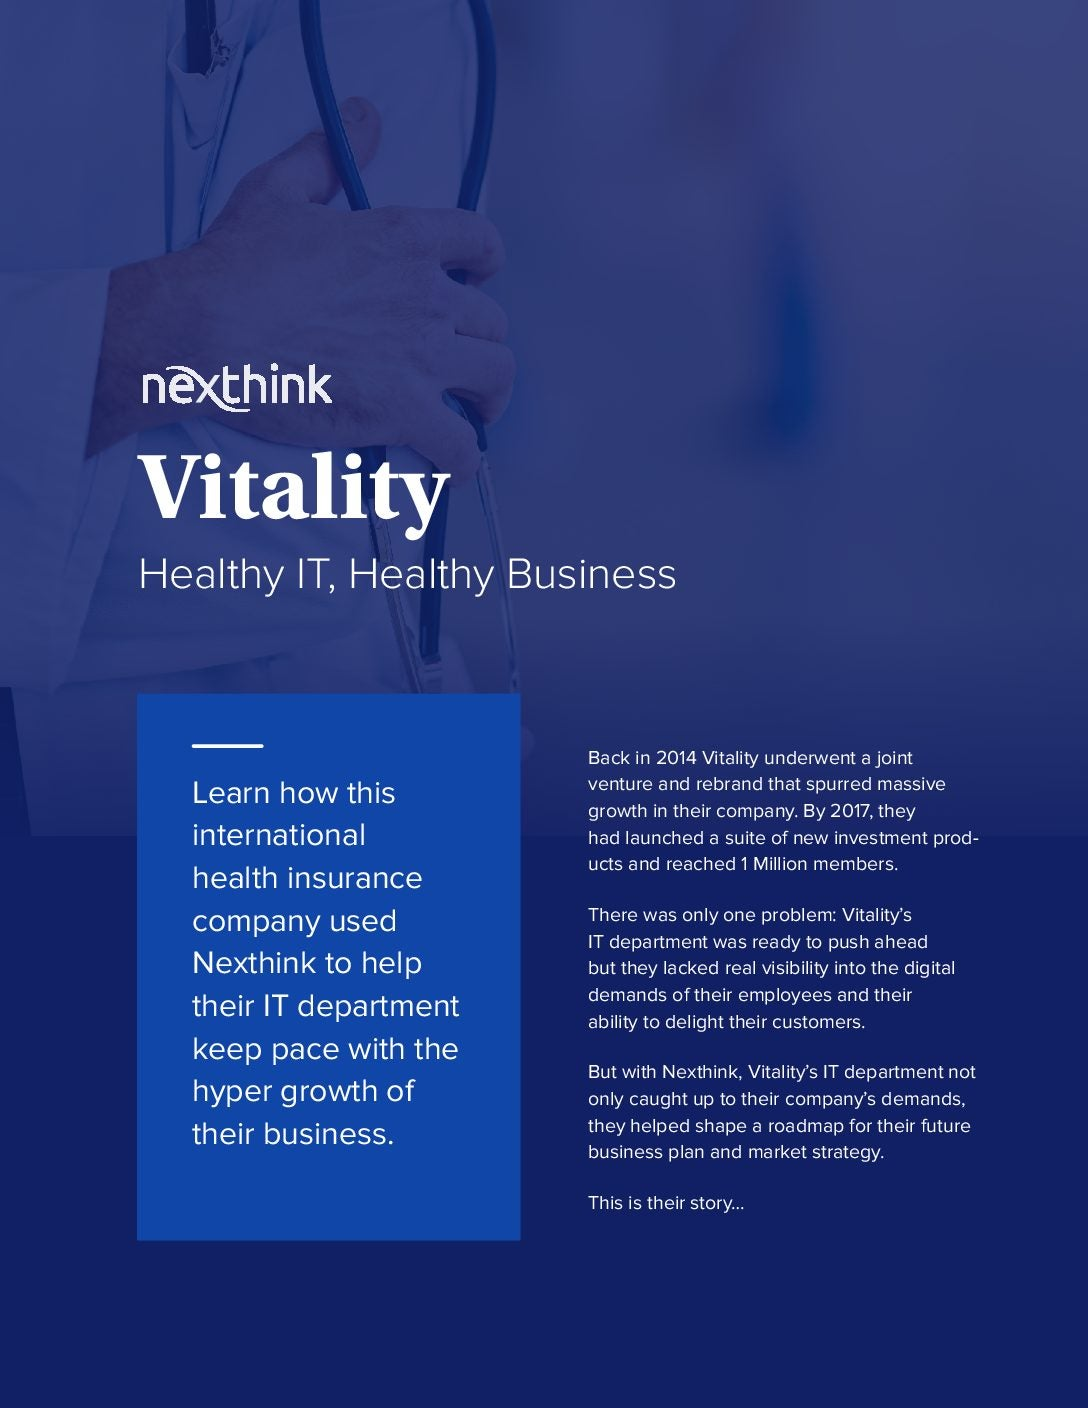 Vitality's IT Uses Nexthink To Fuel Hypergrowth